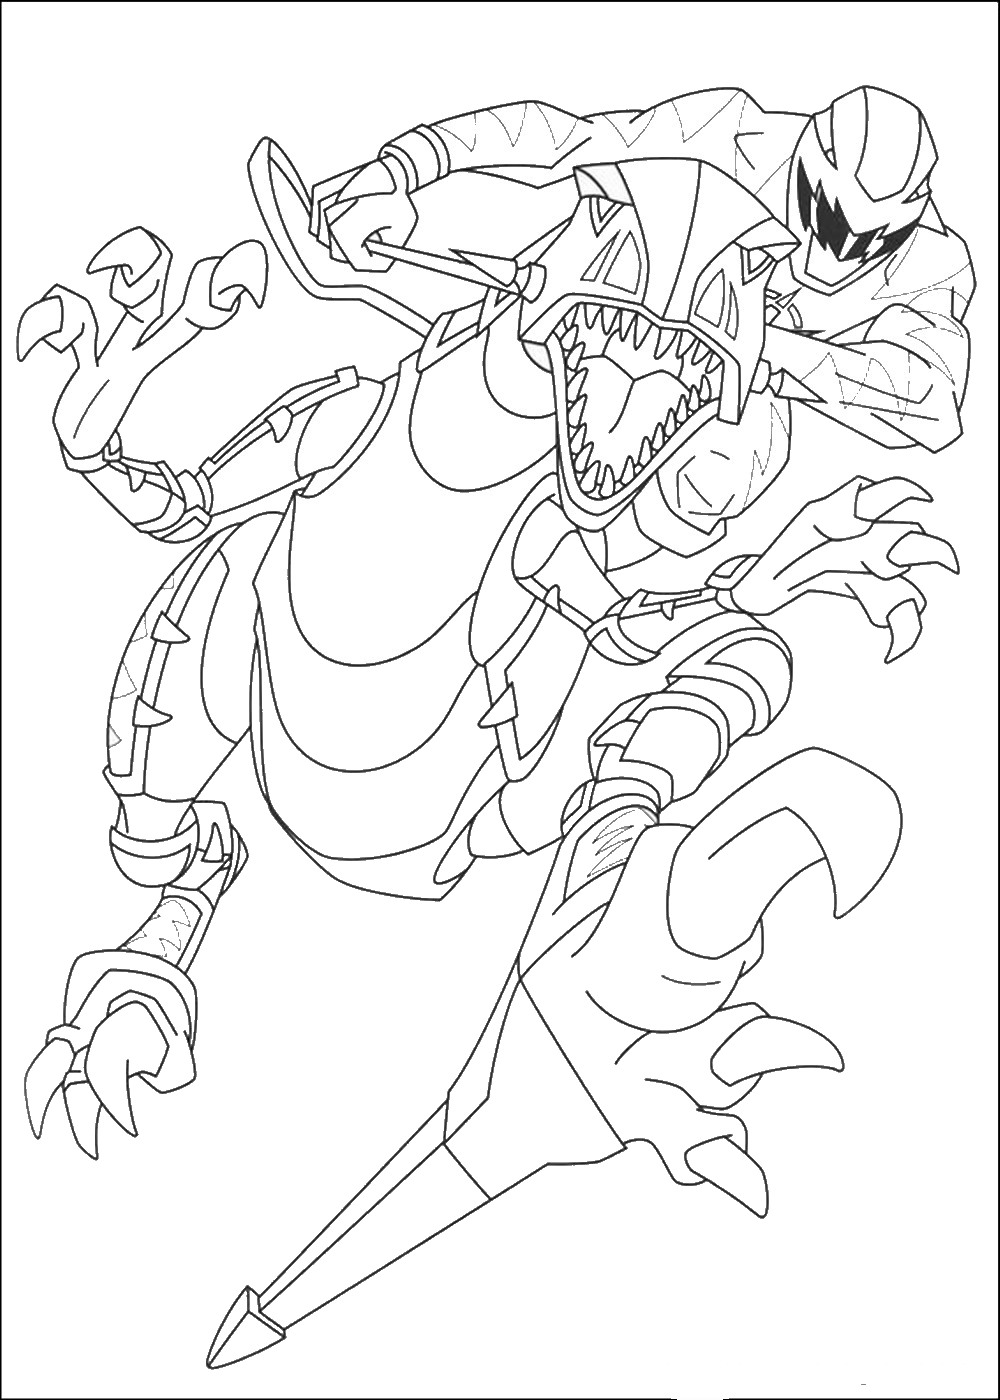 power ranger coloring pages free power rangers coloring pages power rangers coloring coloring ranger pages power free